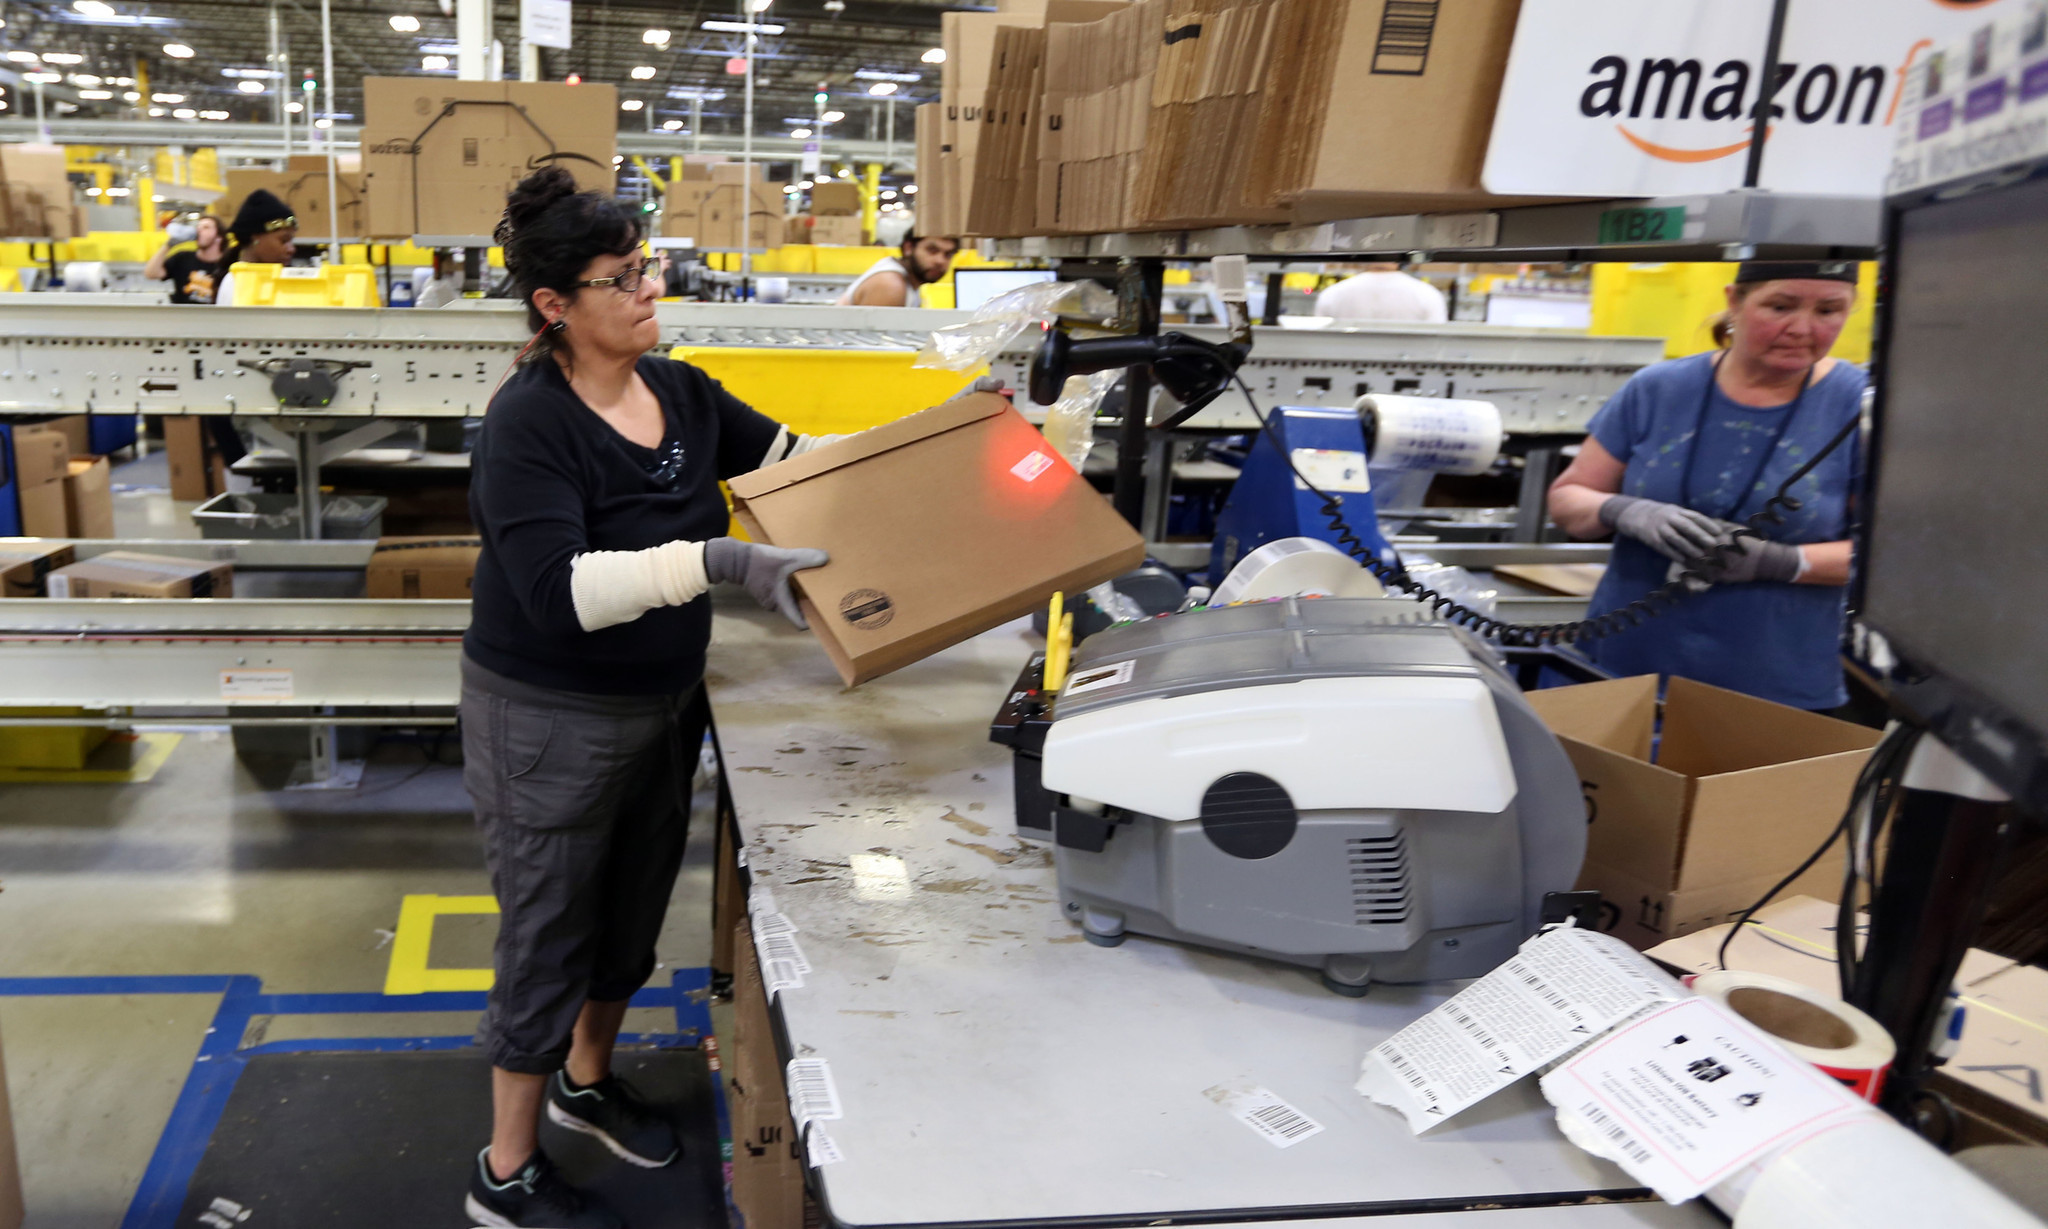 Amazon S Aurora Distribution Center Deal May Be One Of The